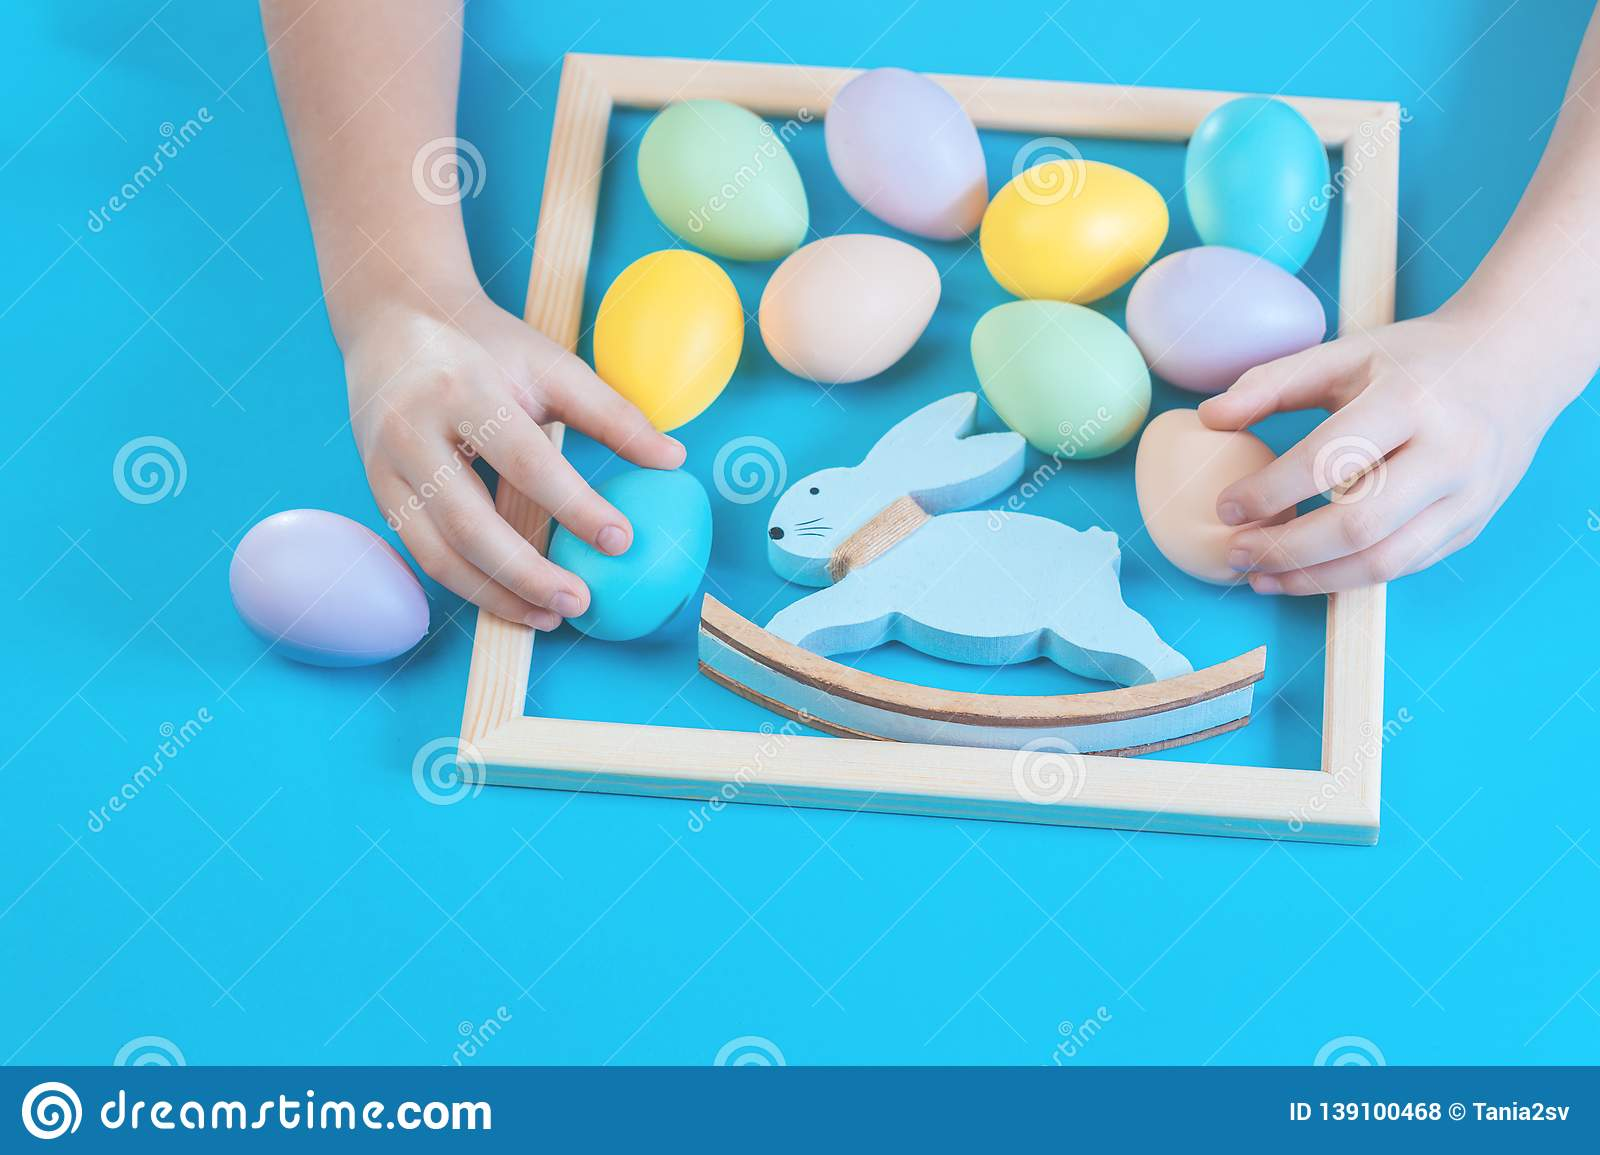 Pastel scattered Easter eggs with kids hands